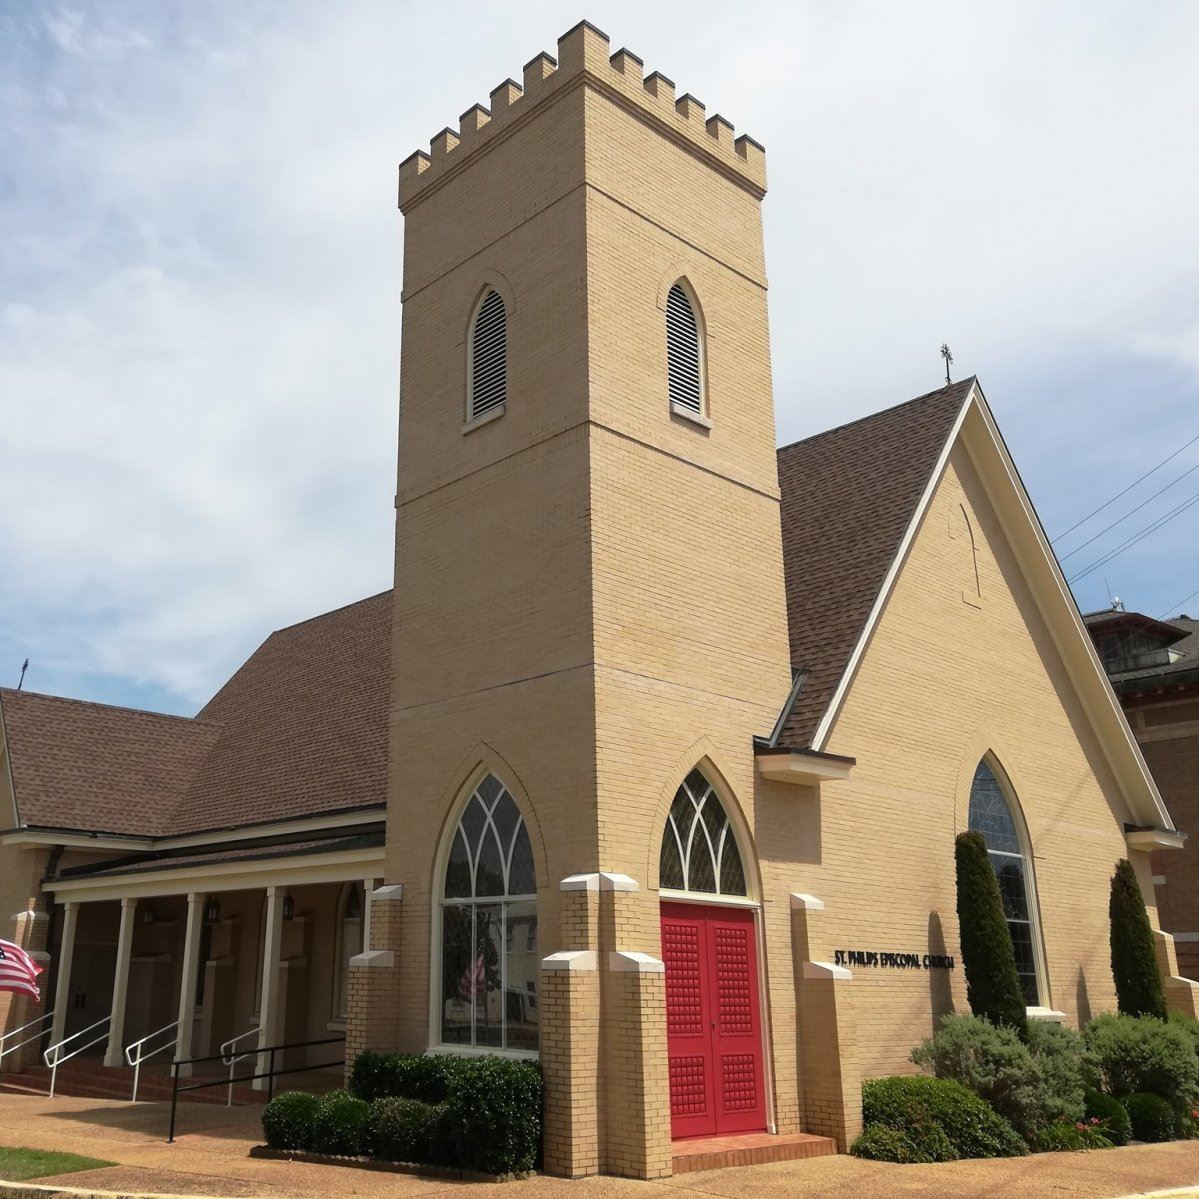 St Phiips Episcopal Church